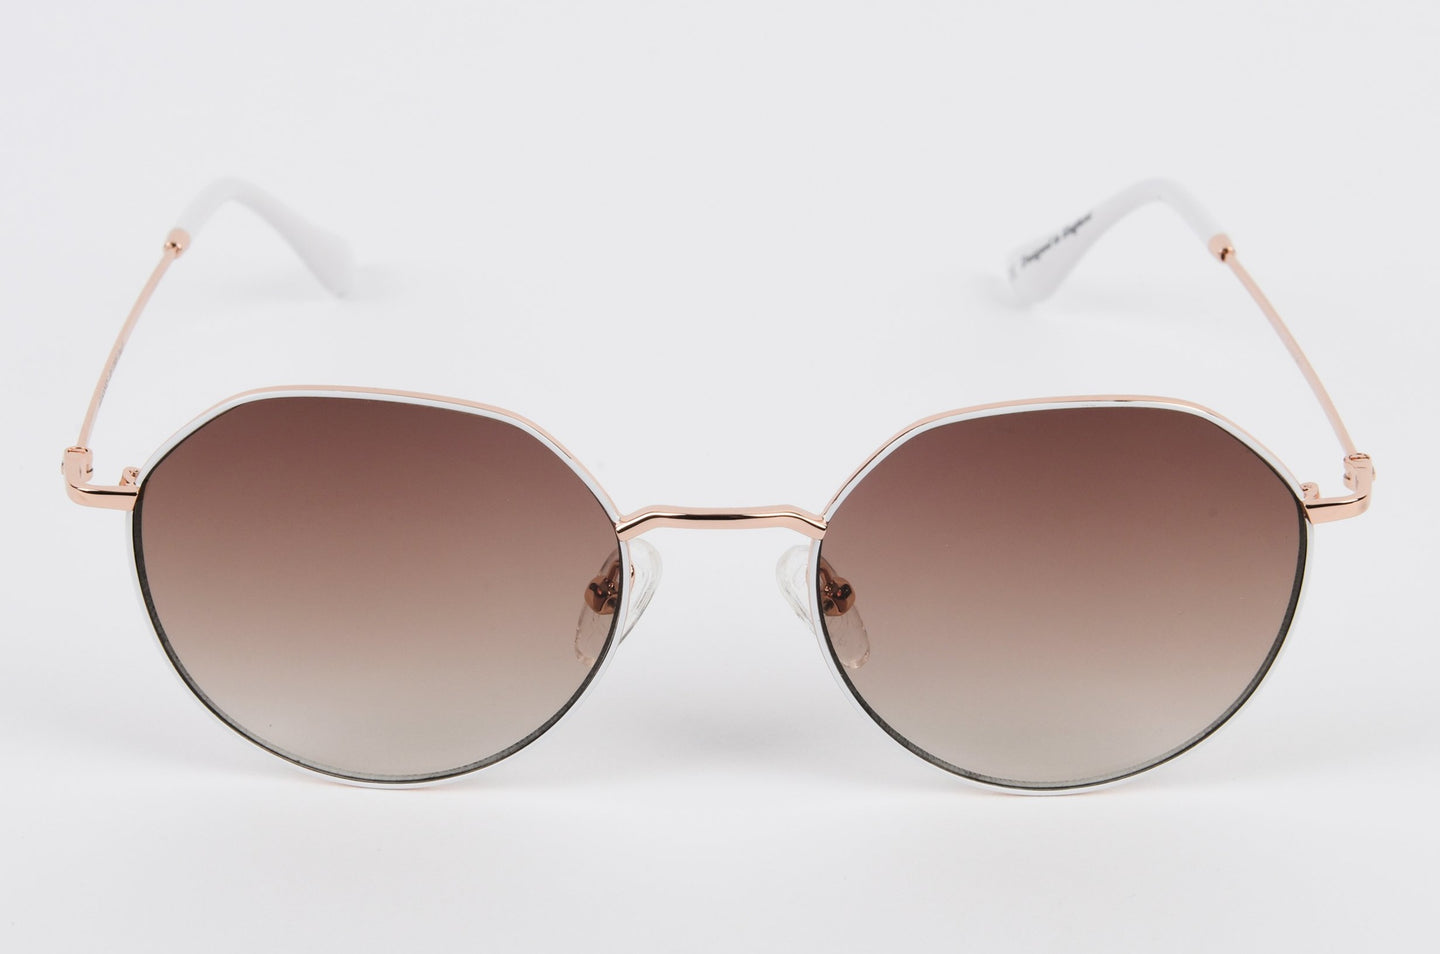 Rose gold titanium sunglasses with brown tint